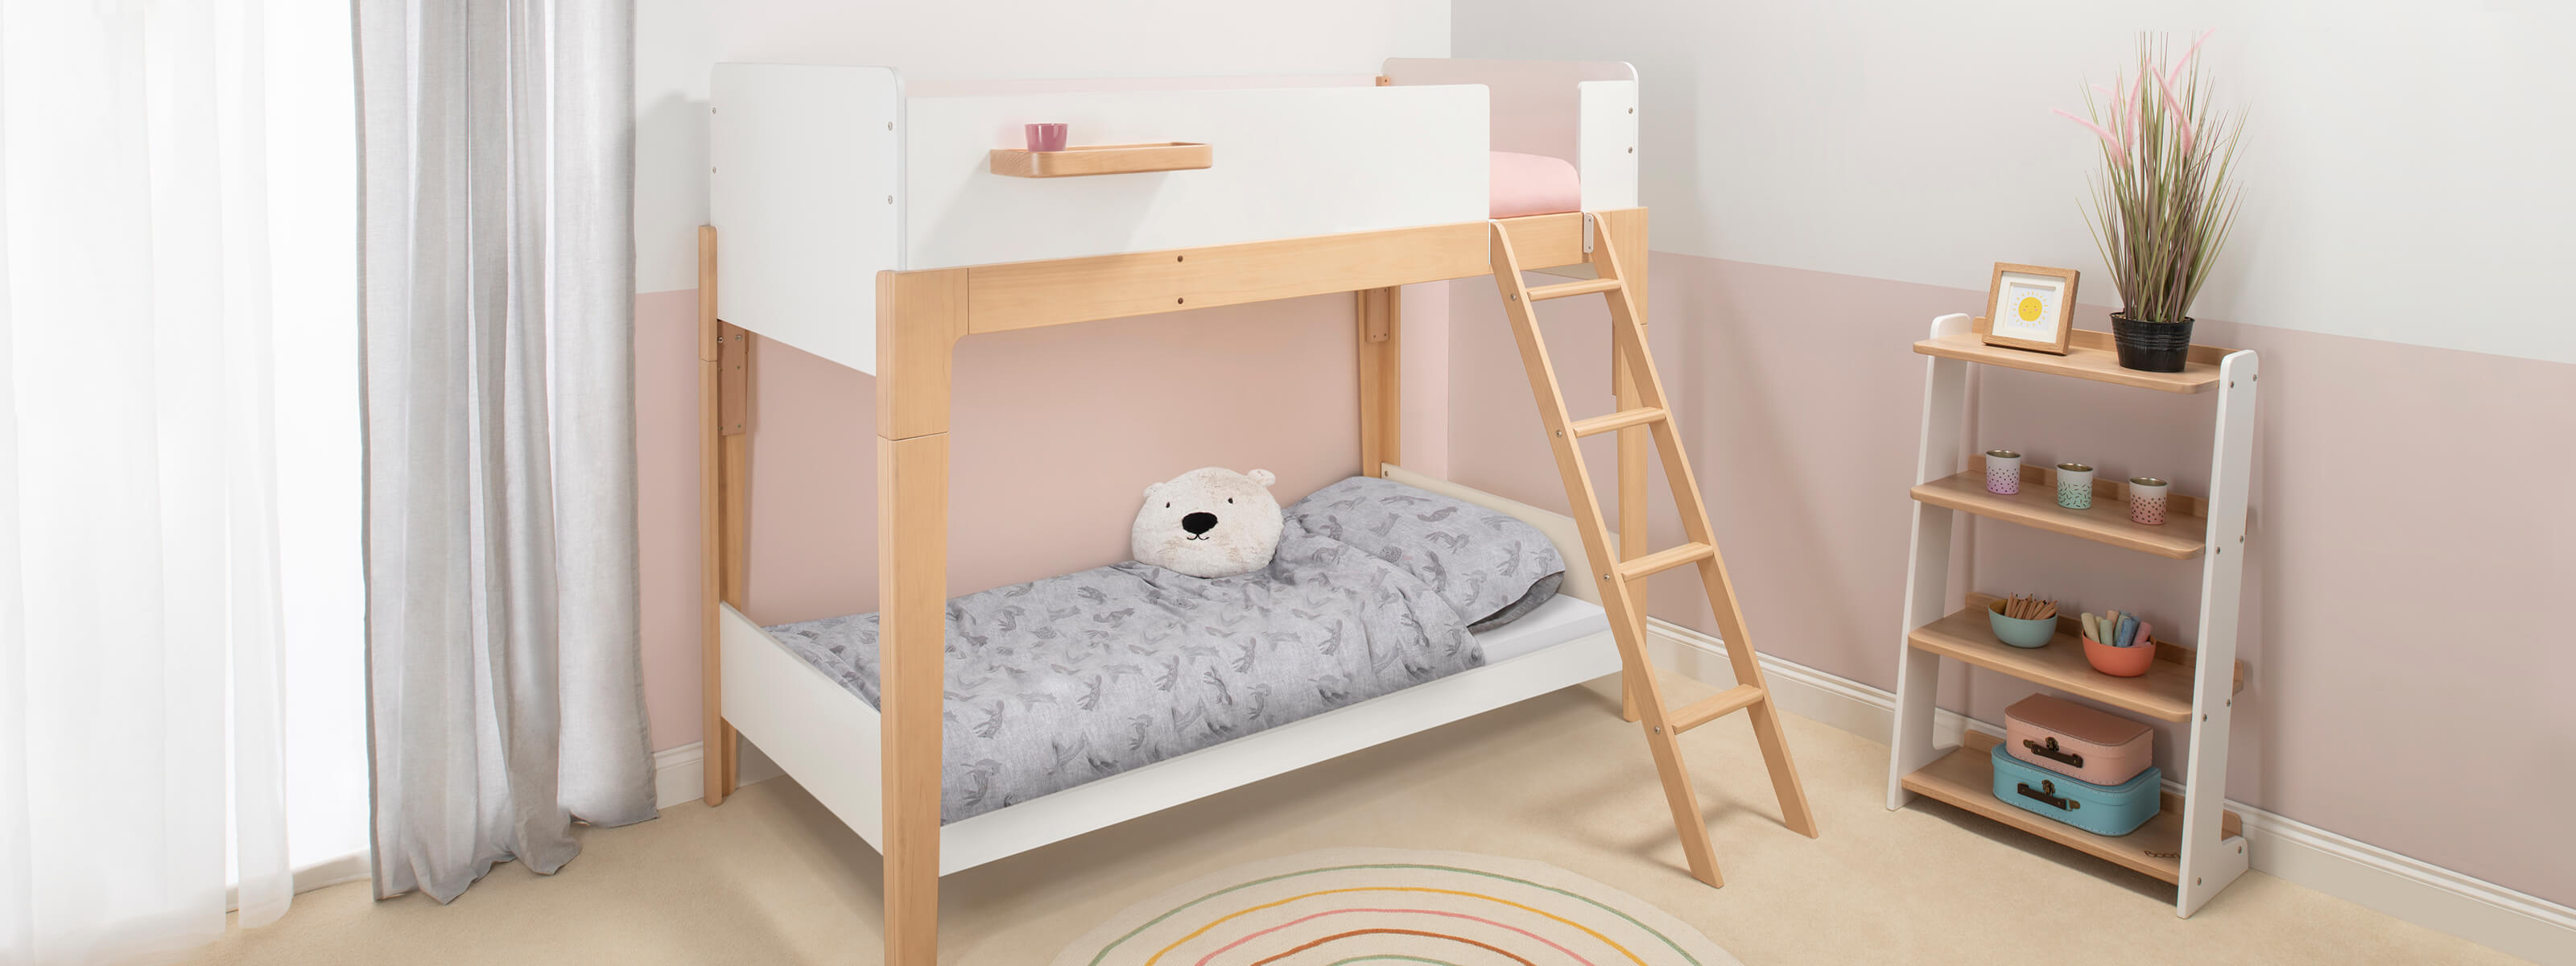 Product_Page_Lifestyle_1600_x_600_Natty_Single_Bunk_Bed_Barley_White_and_Almond__FORWEB__2x